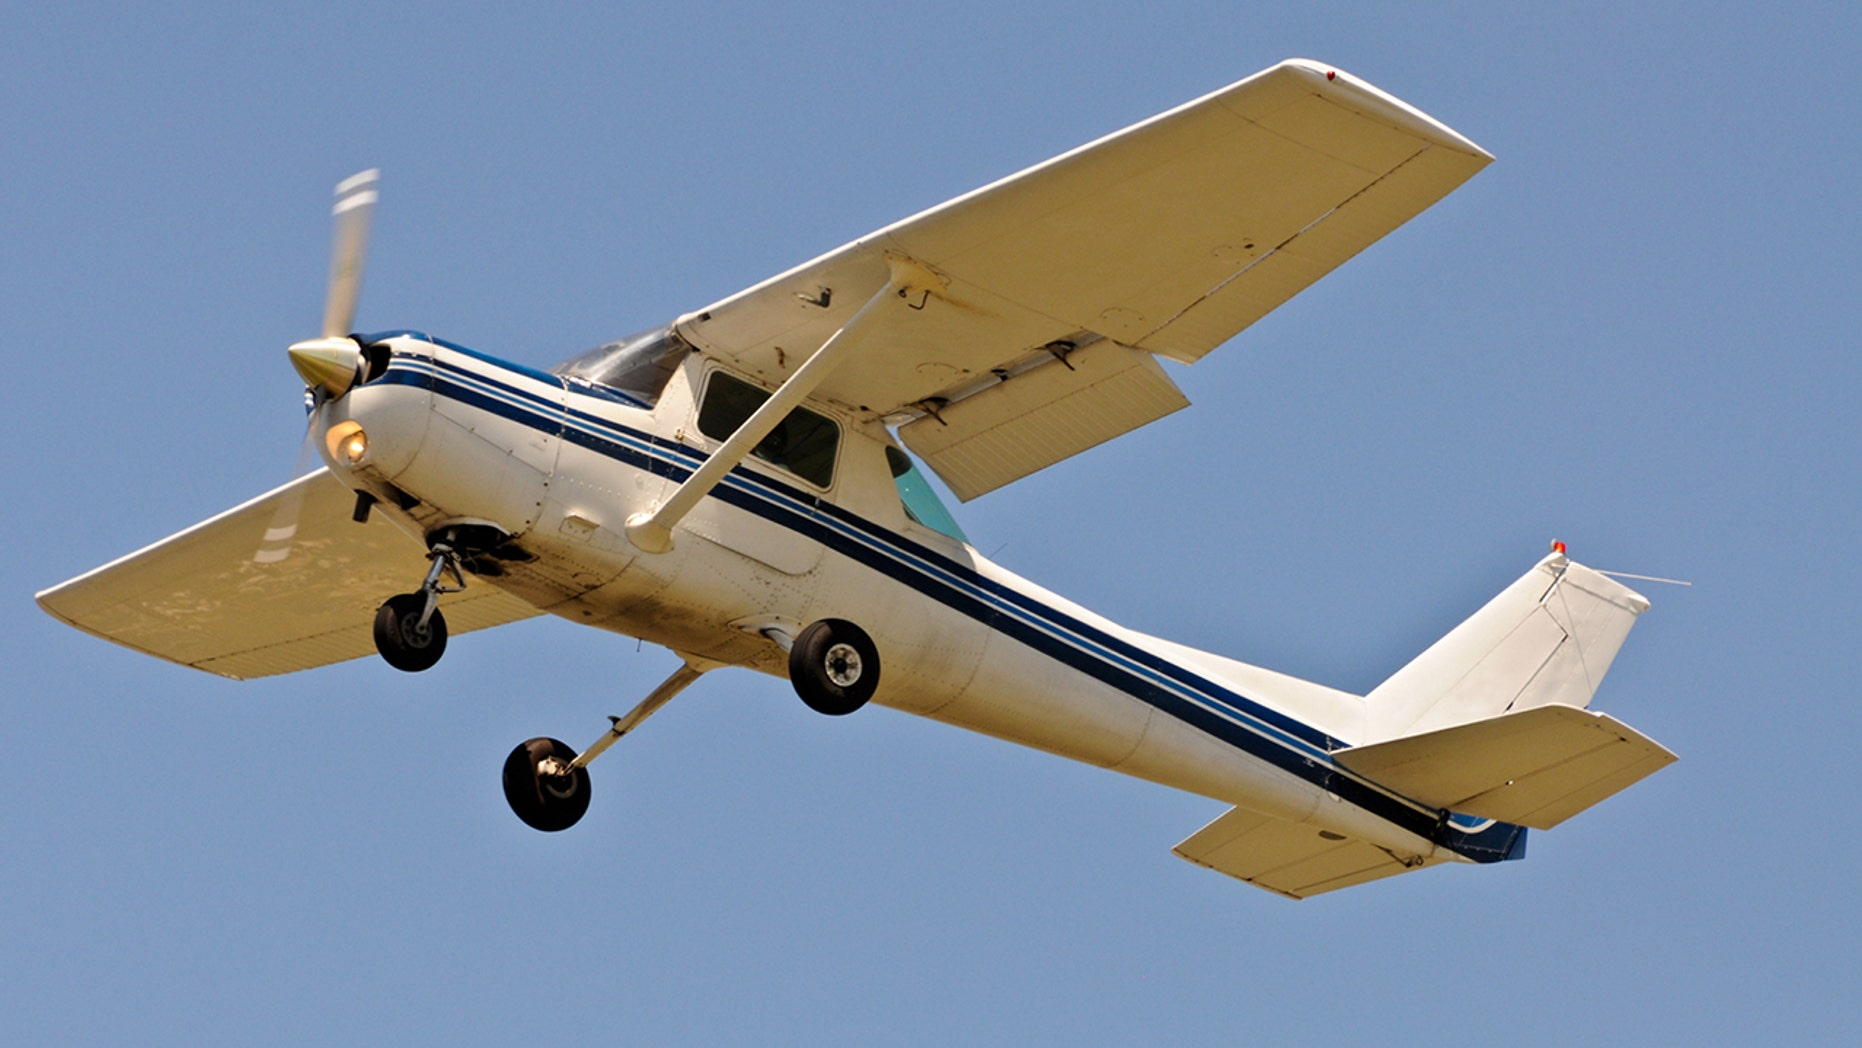 A small plane made an emergency landing on a freeway in California.